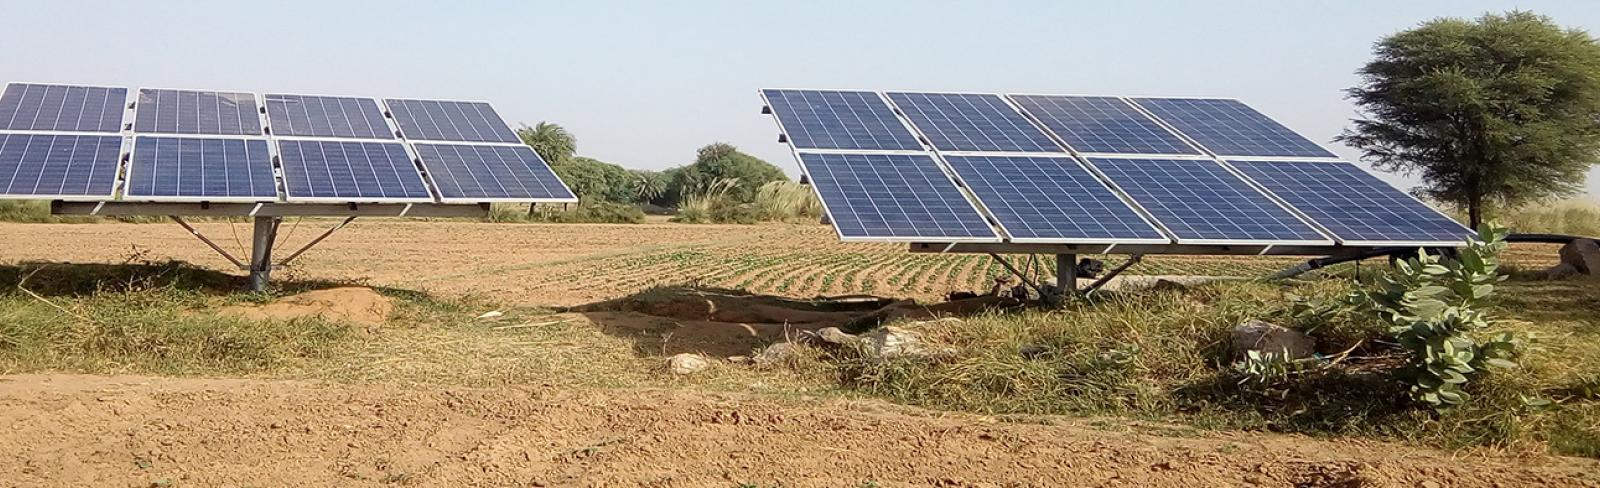 Solar panels remote africa